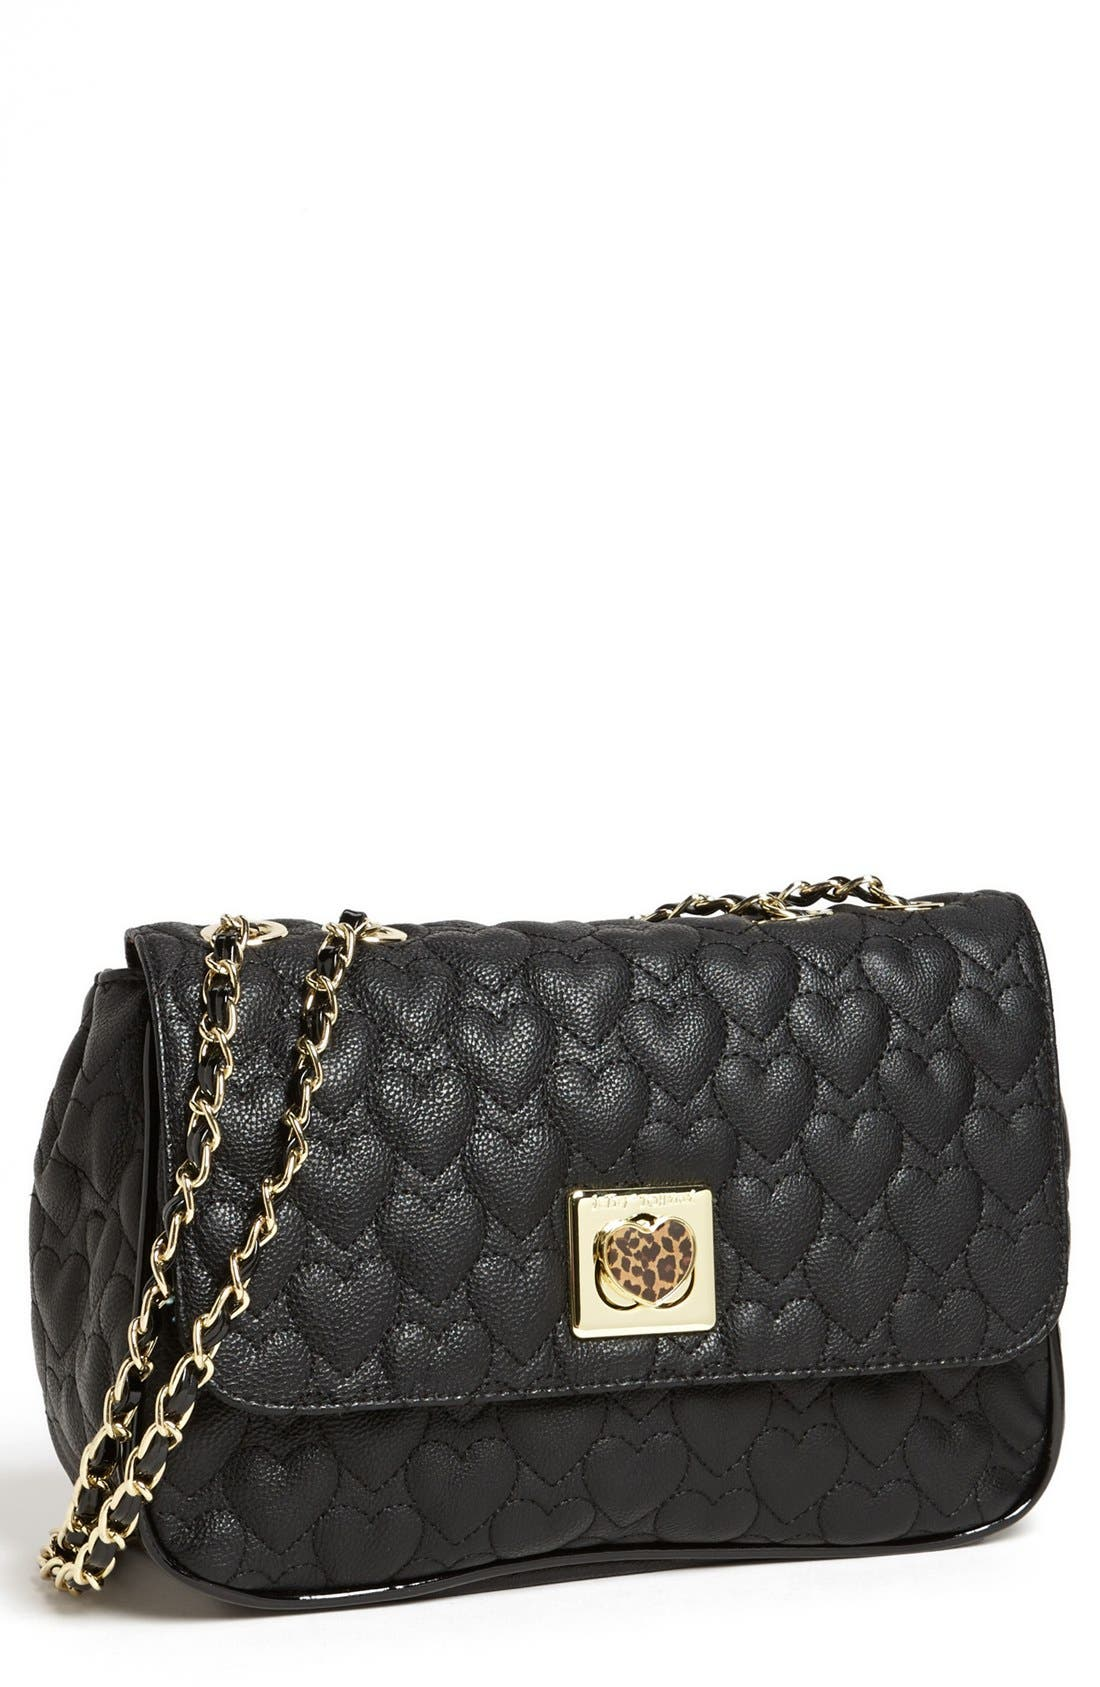 Main Image - Betsey Johnson 'Will You Be Mine' Crossbody Bag